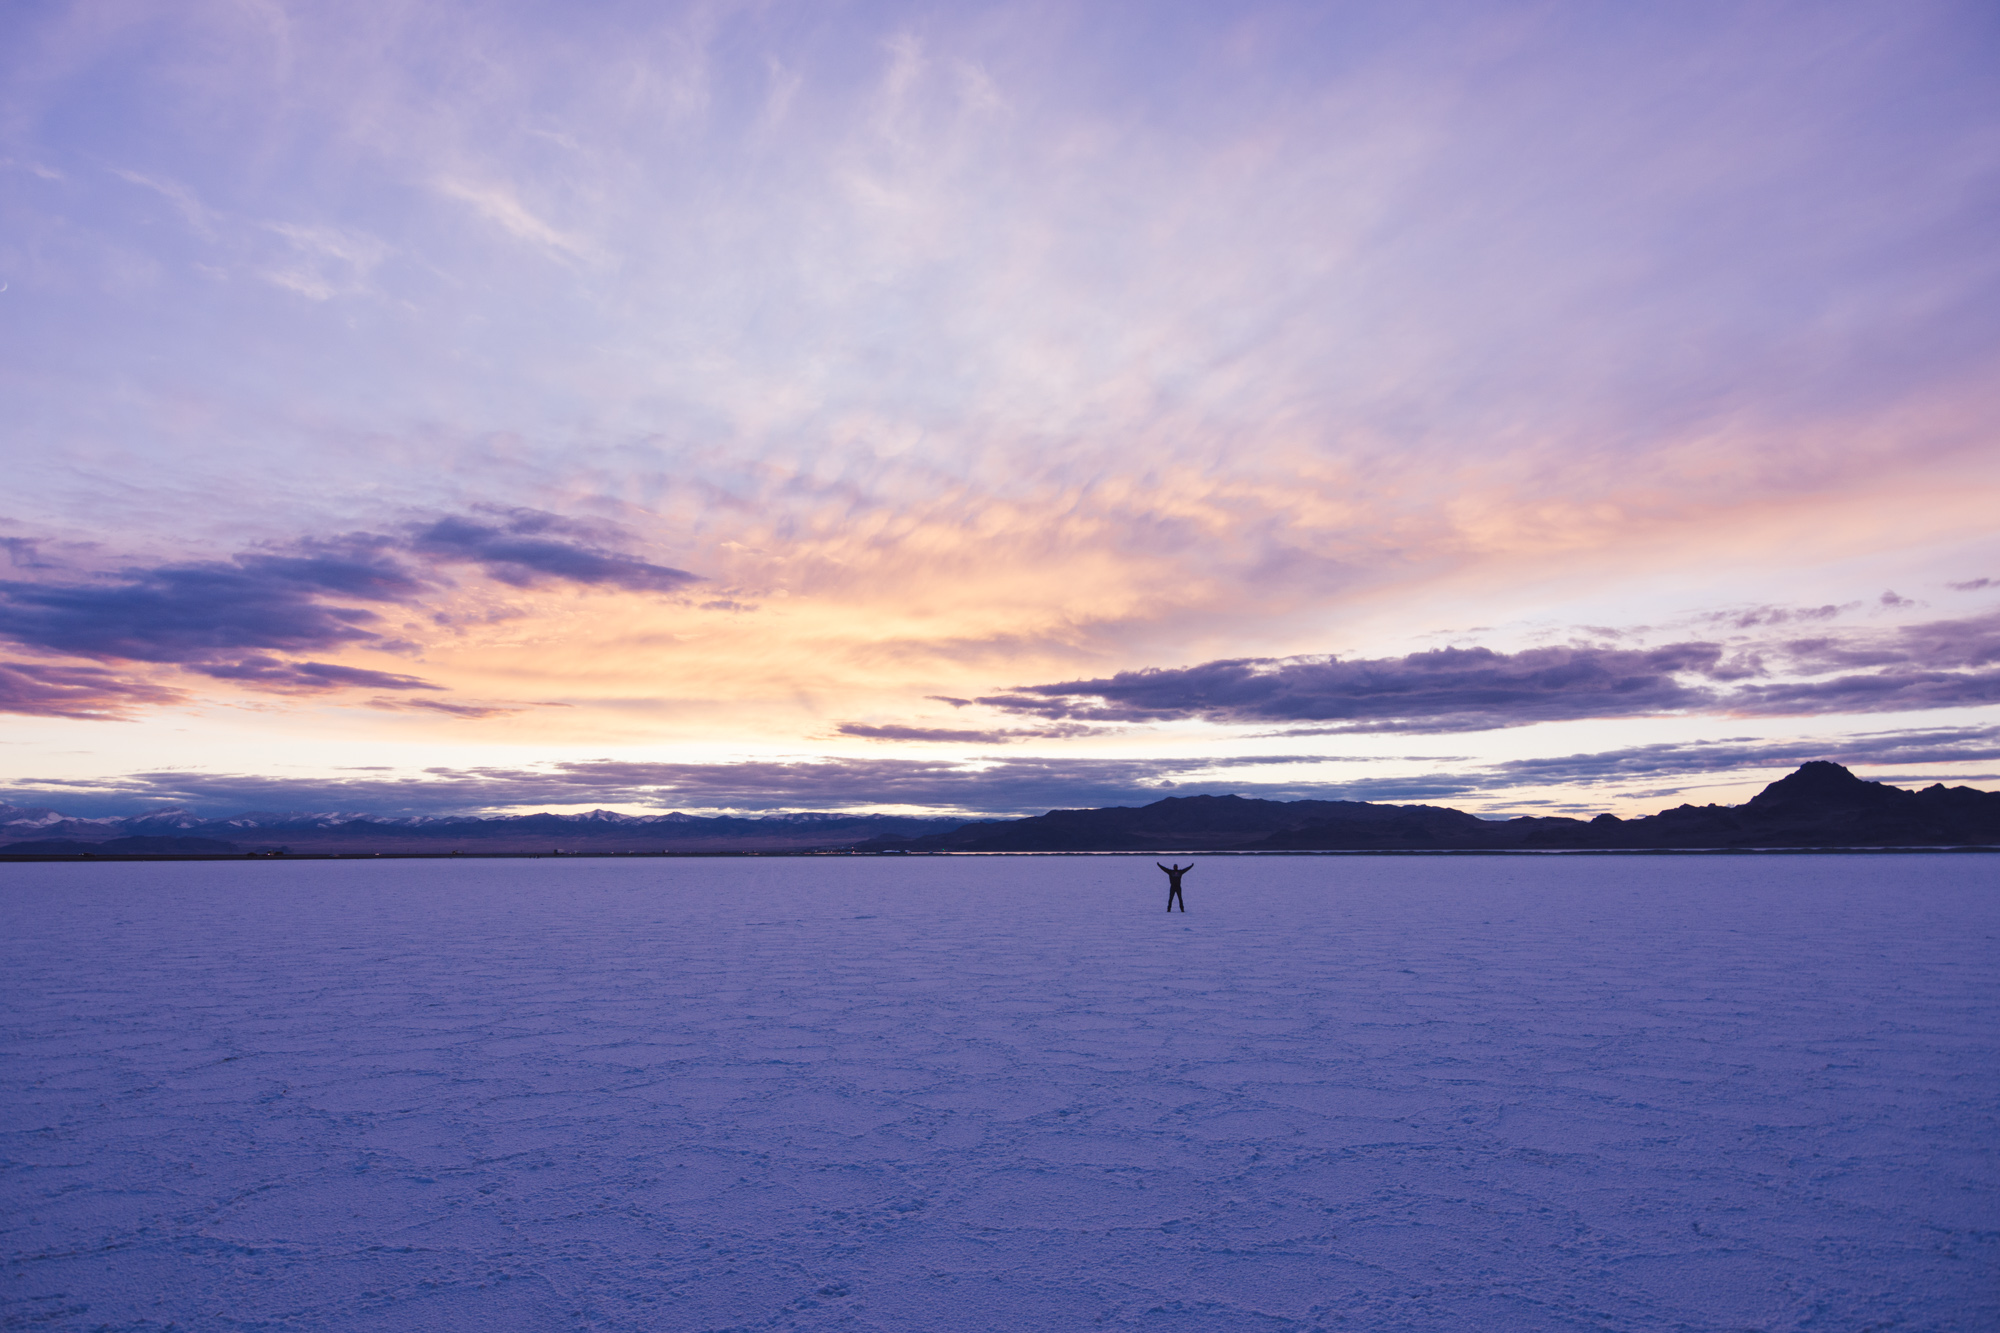 tfw u skip a national park and drive 9 hours through a blizzard but manage to make it to the bonneville salt flats before the sun sets